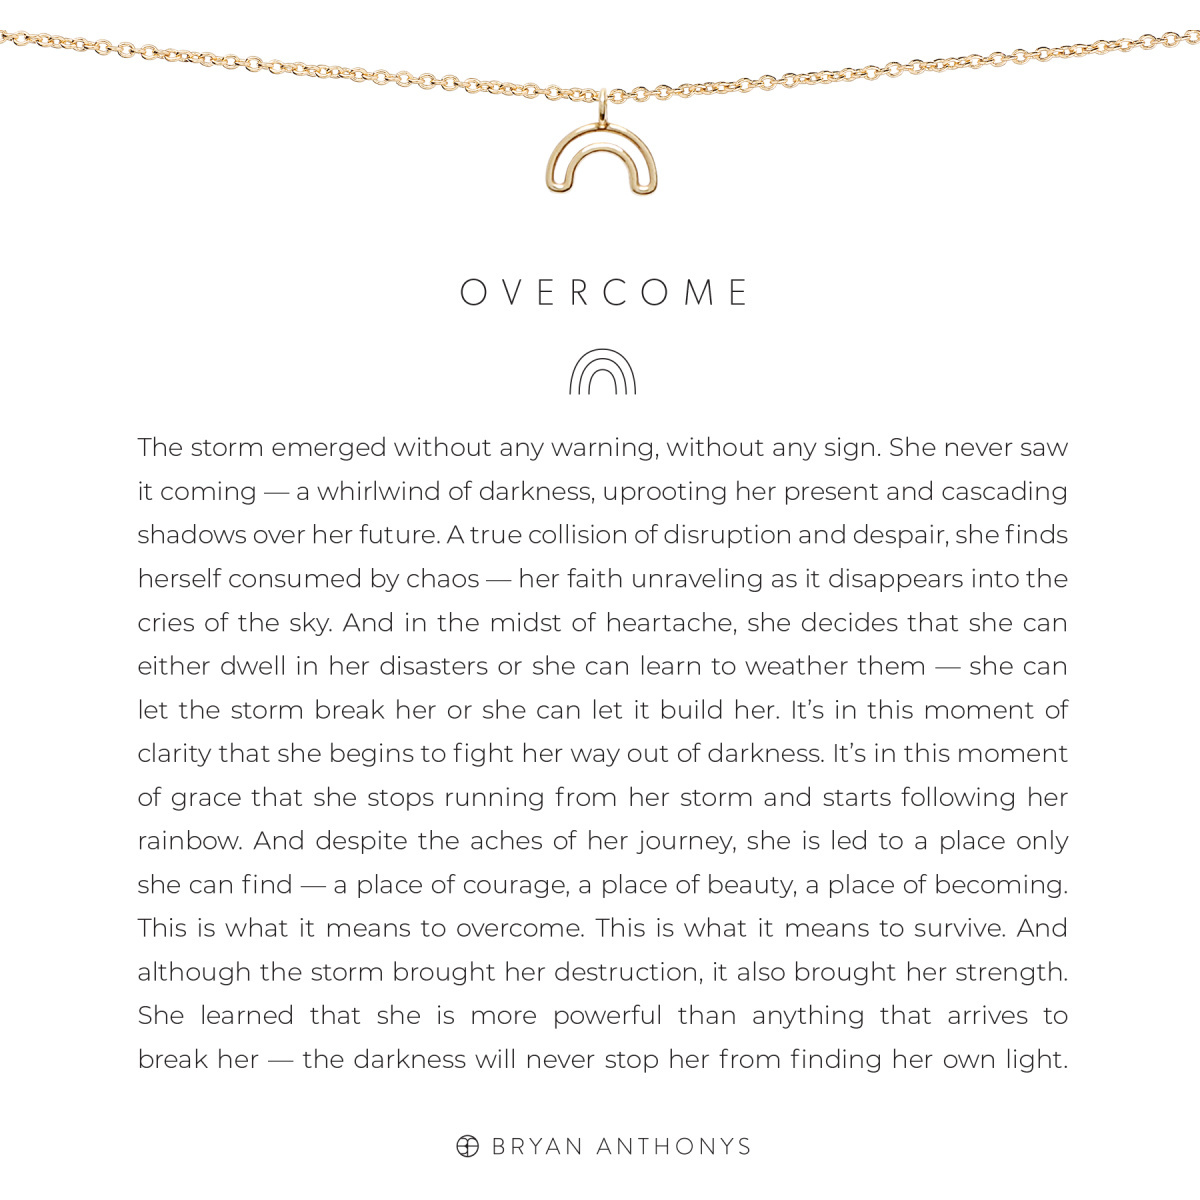 Bryan Anthonys Bryan Anthonys Overcome Necklace